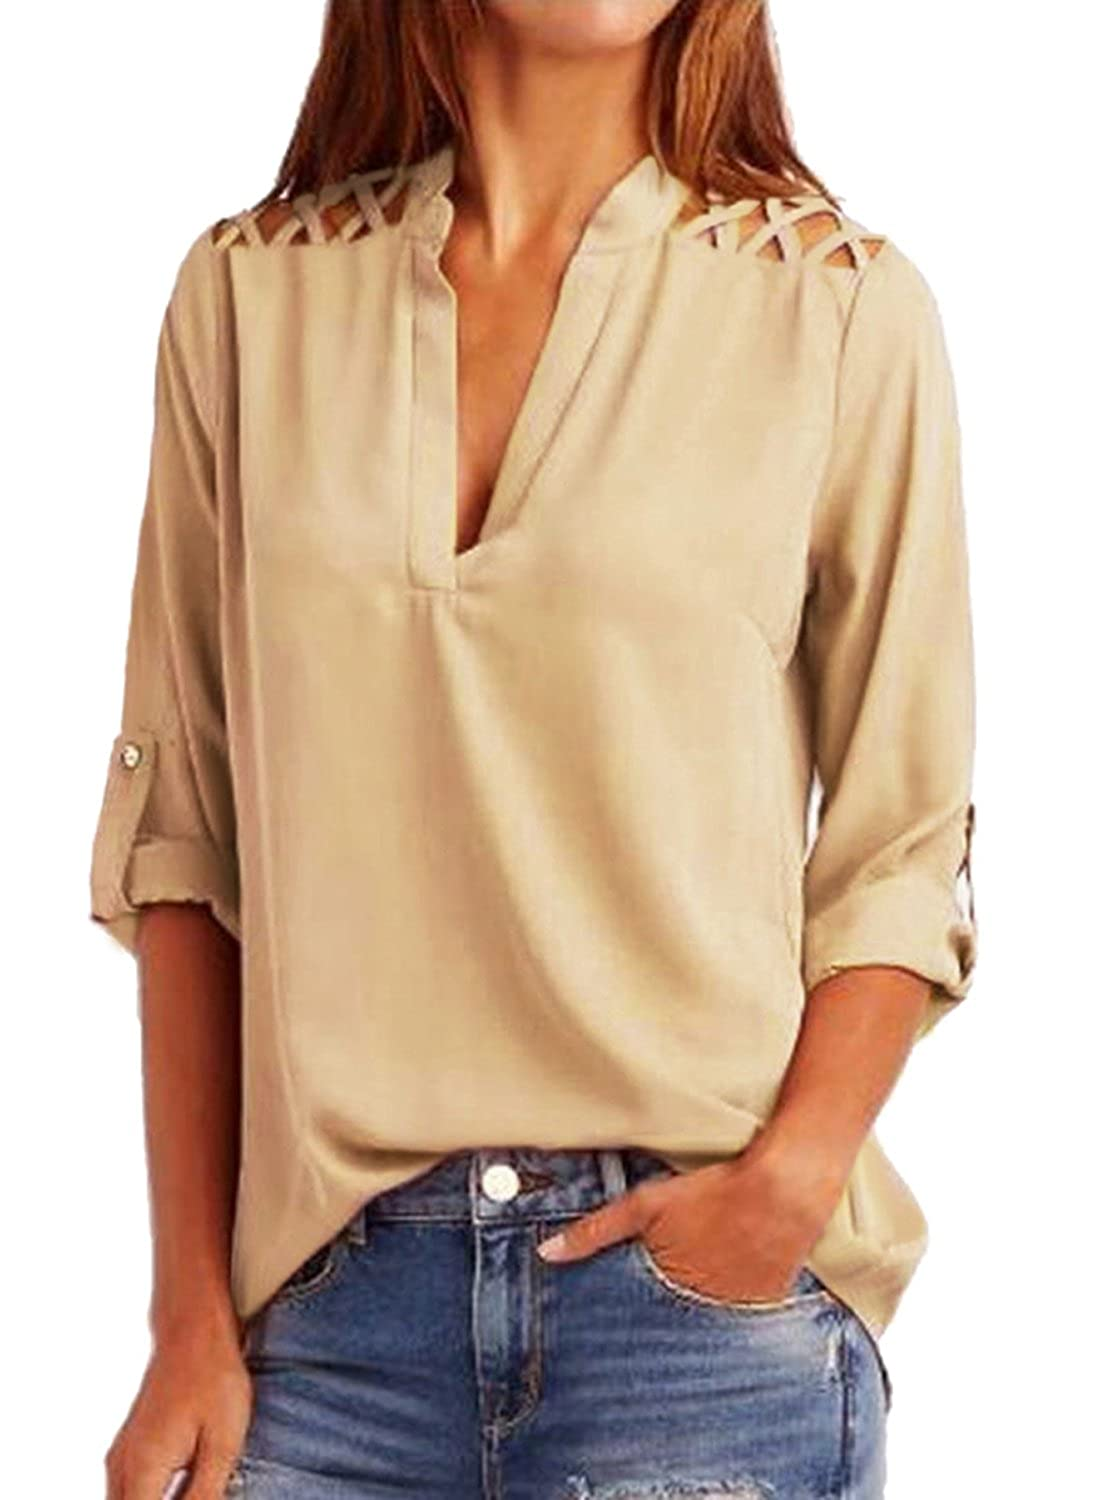 22387ff34fa1d Dokotoo Womens Chiffon Blouses 3 4 Cuffed Sleeve V Neck Hollow Out Cold  Shoulder Casual Tops Make a statement by wholesale stylish blouses